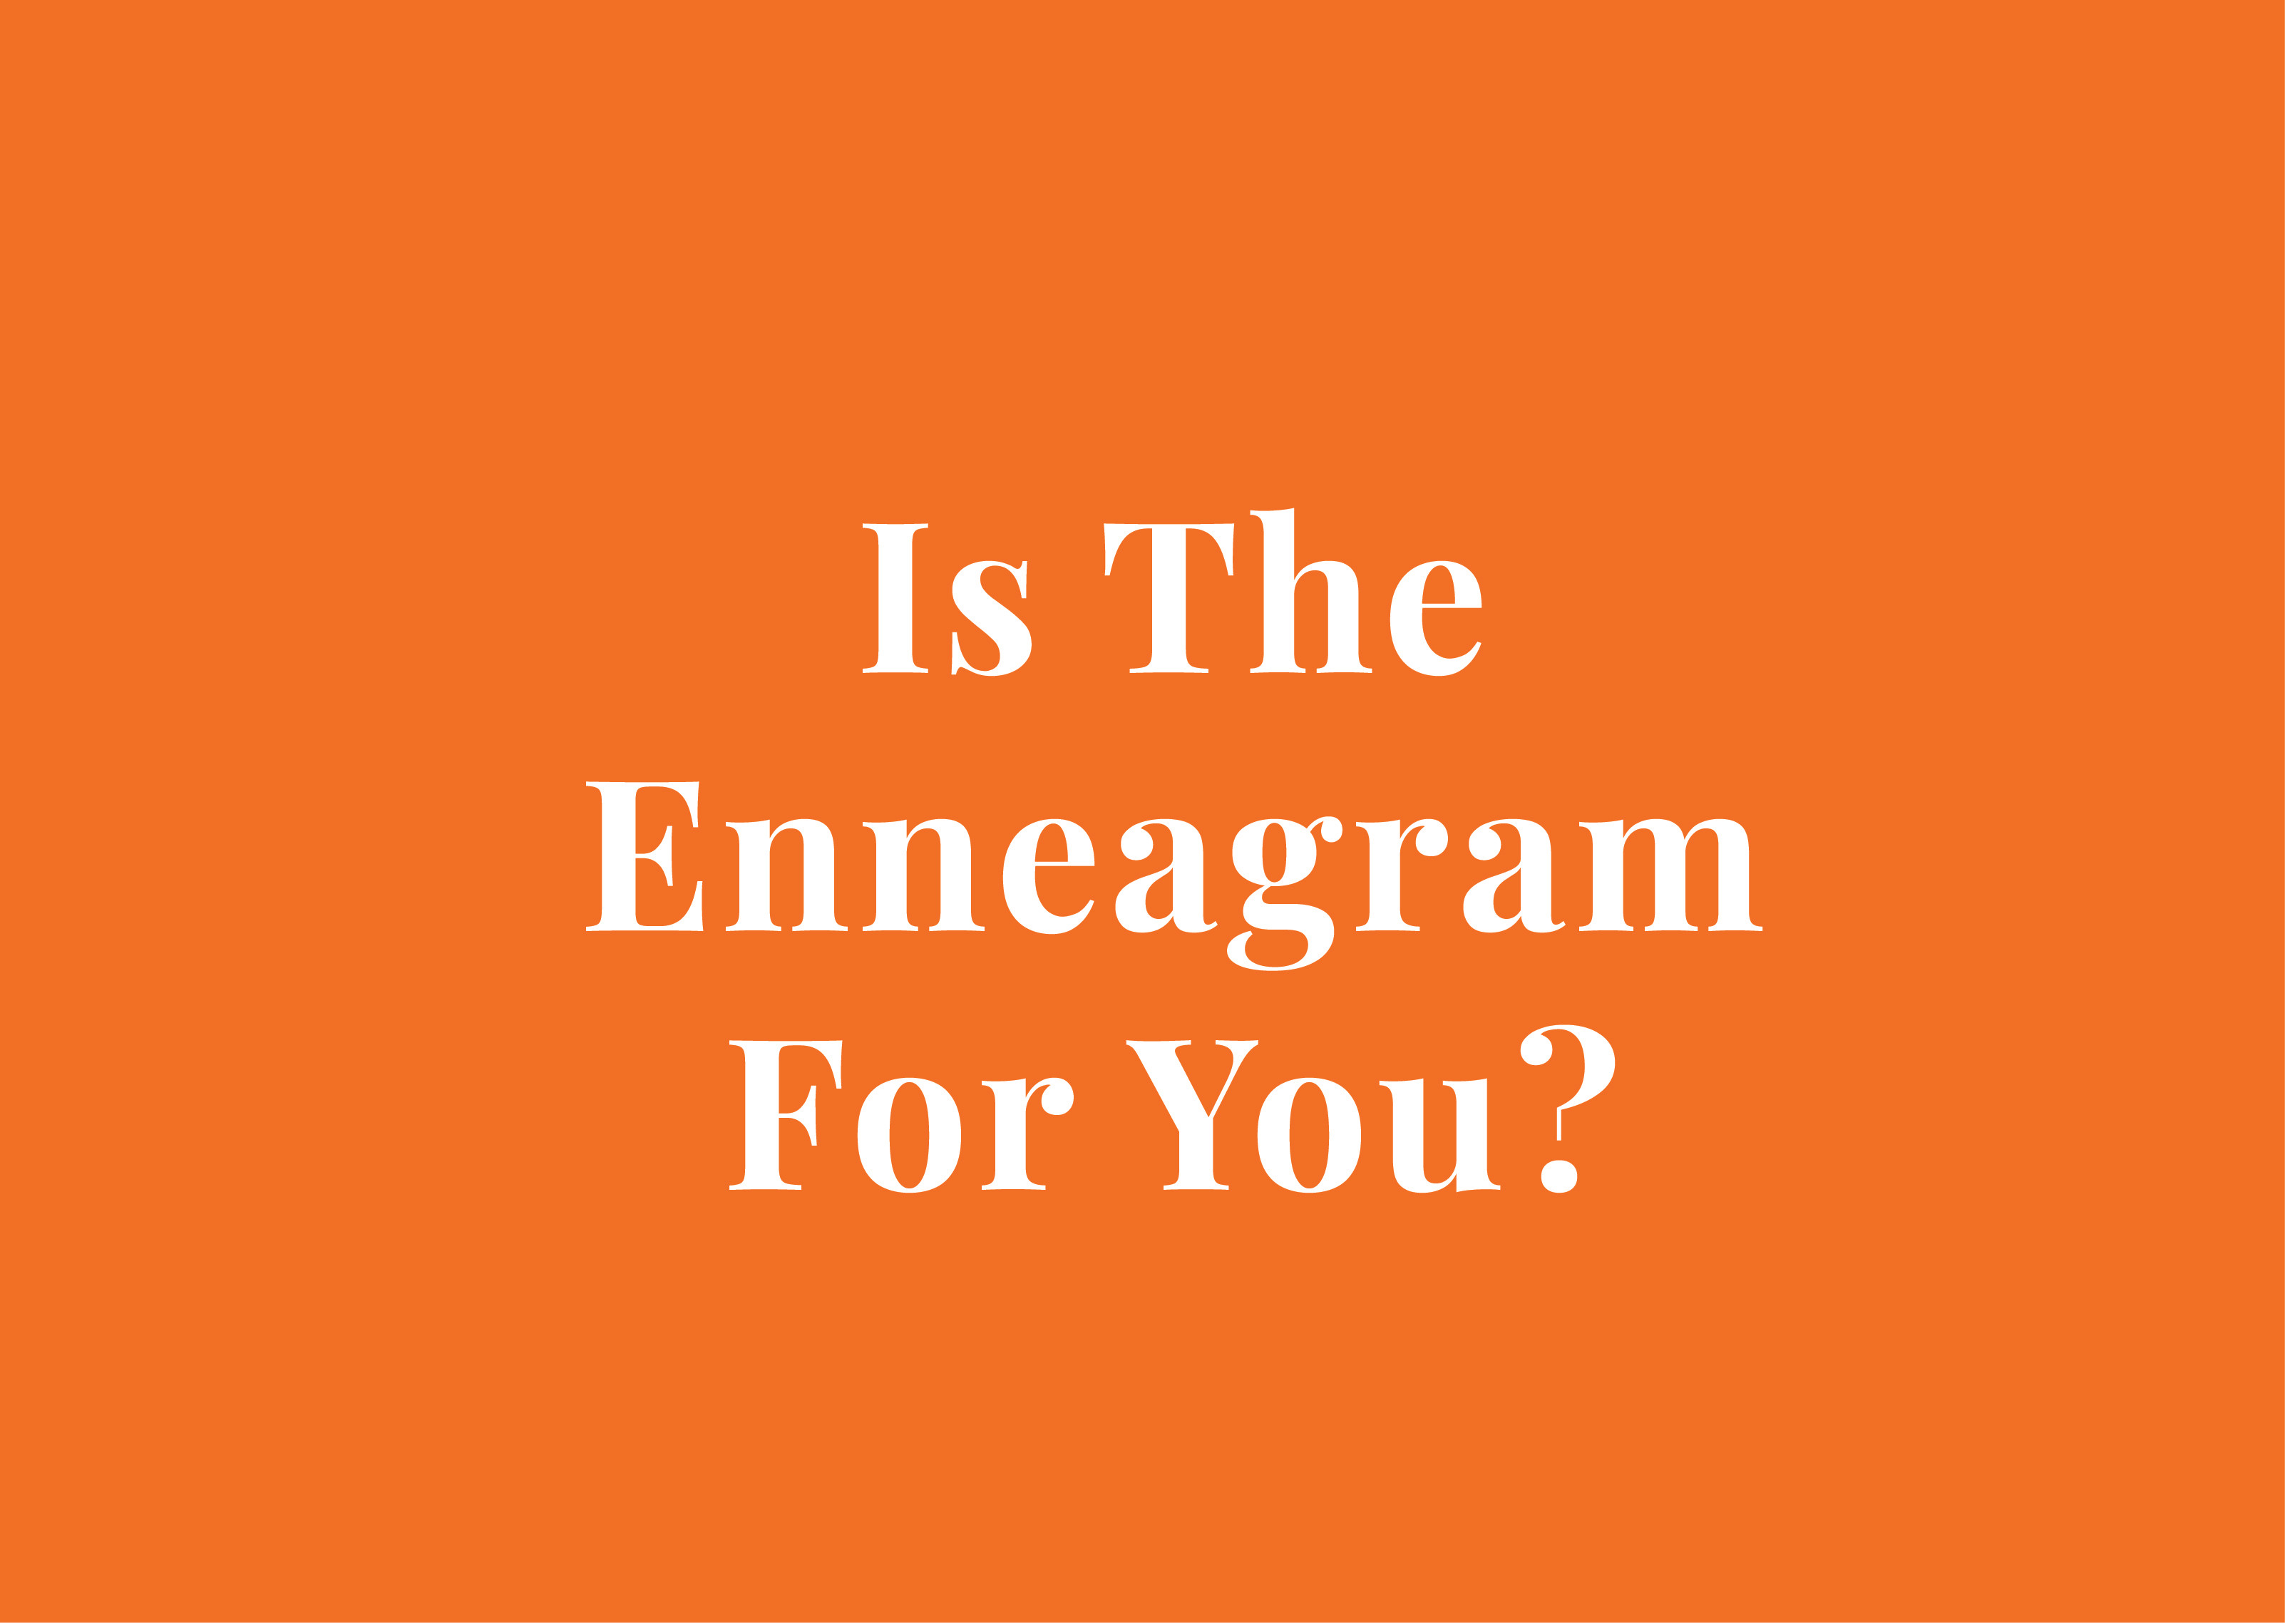 Is The Enneagram For You?